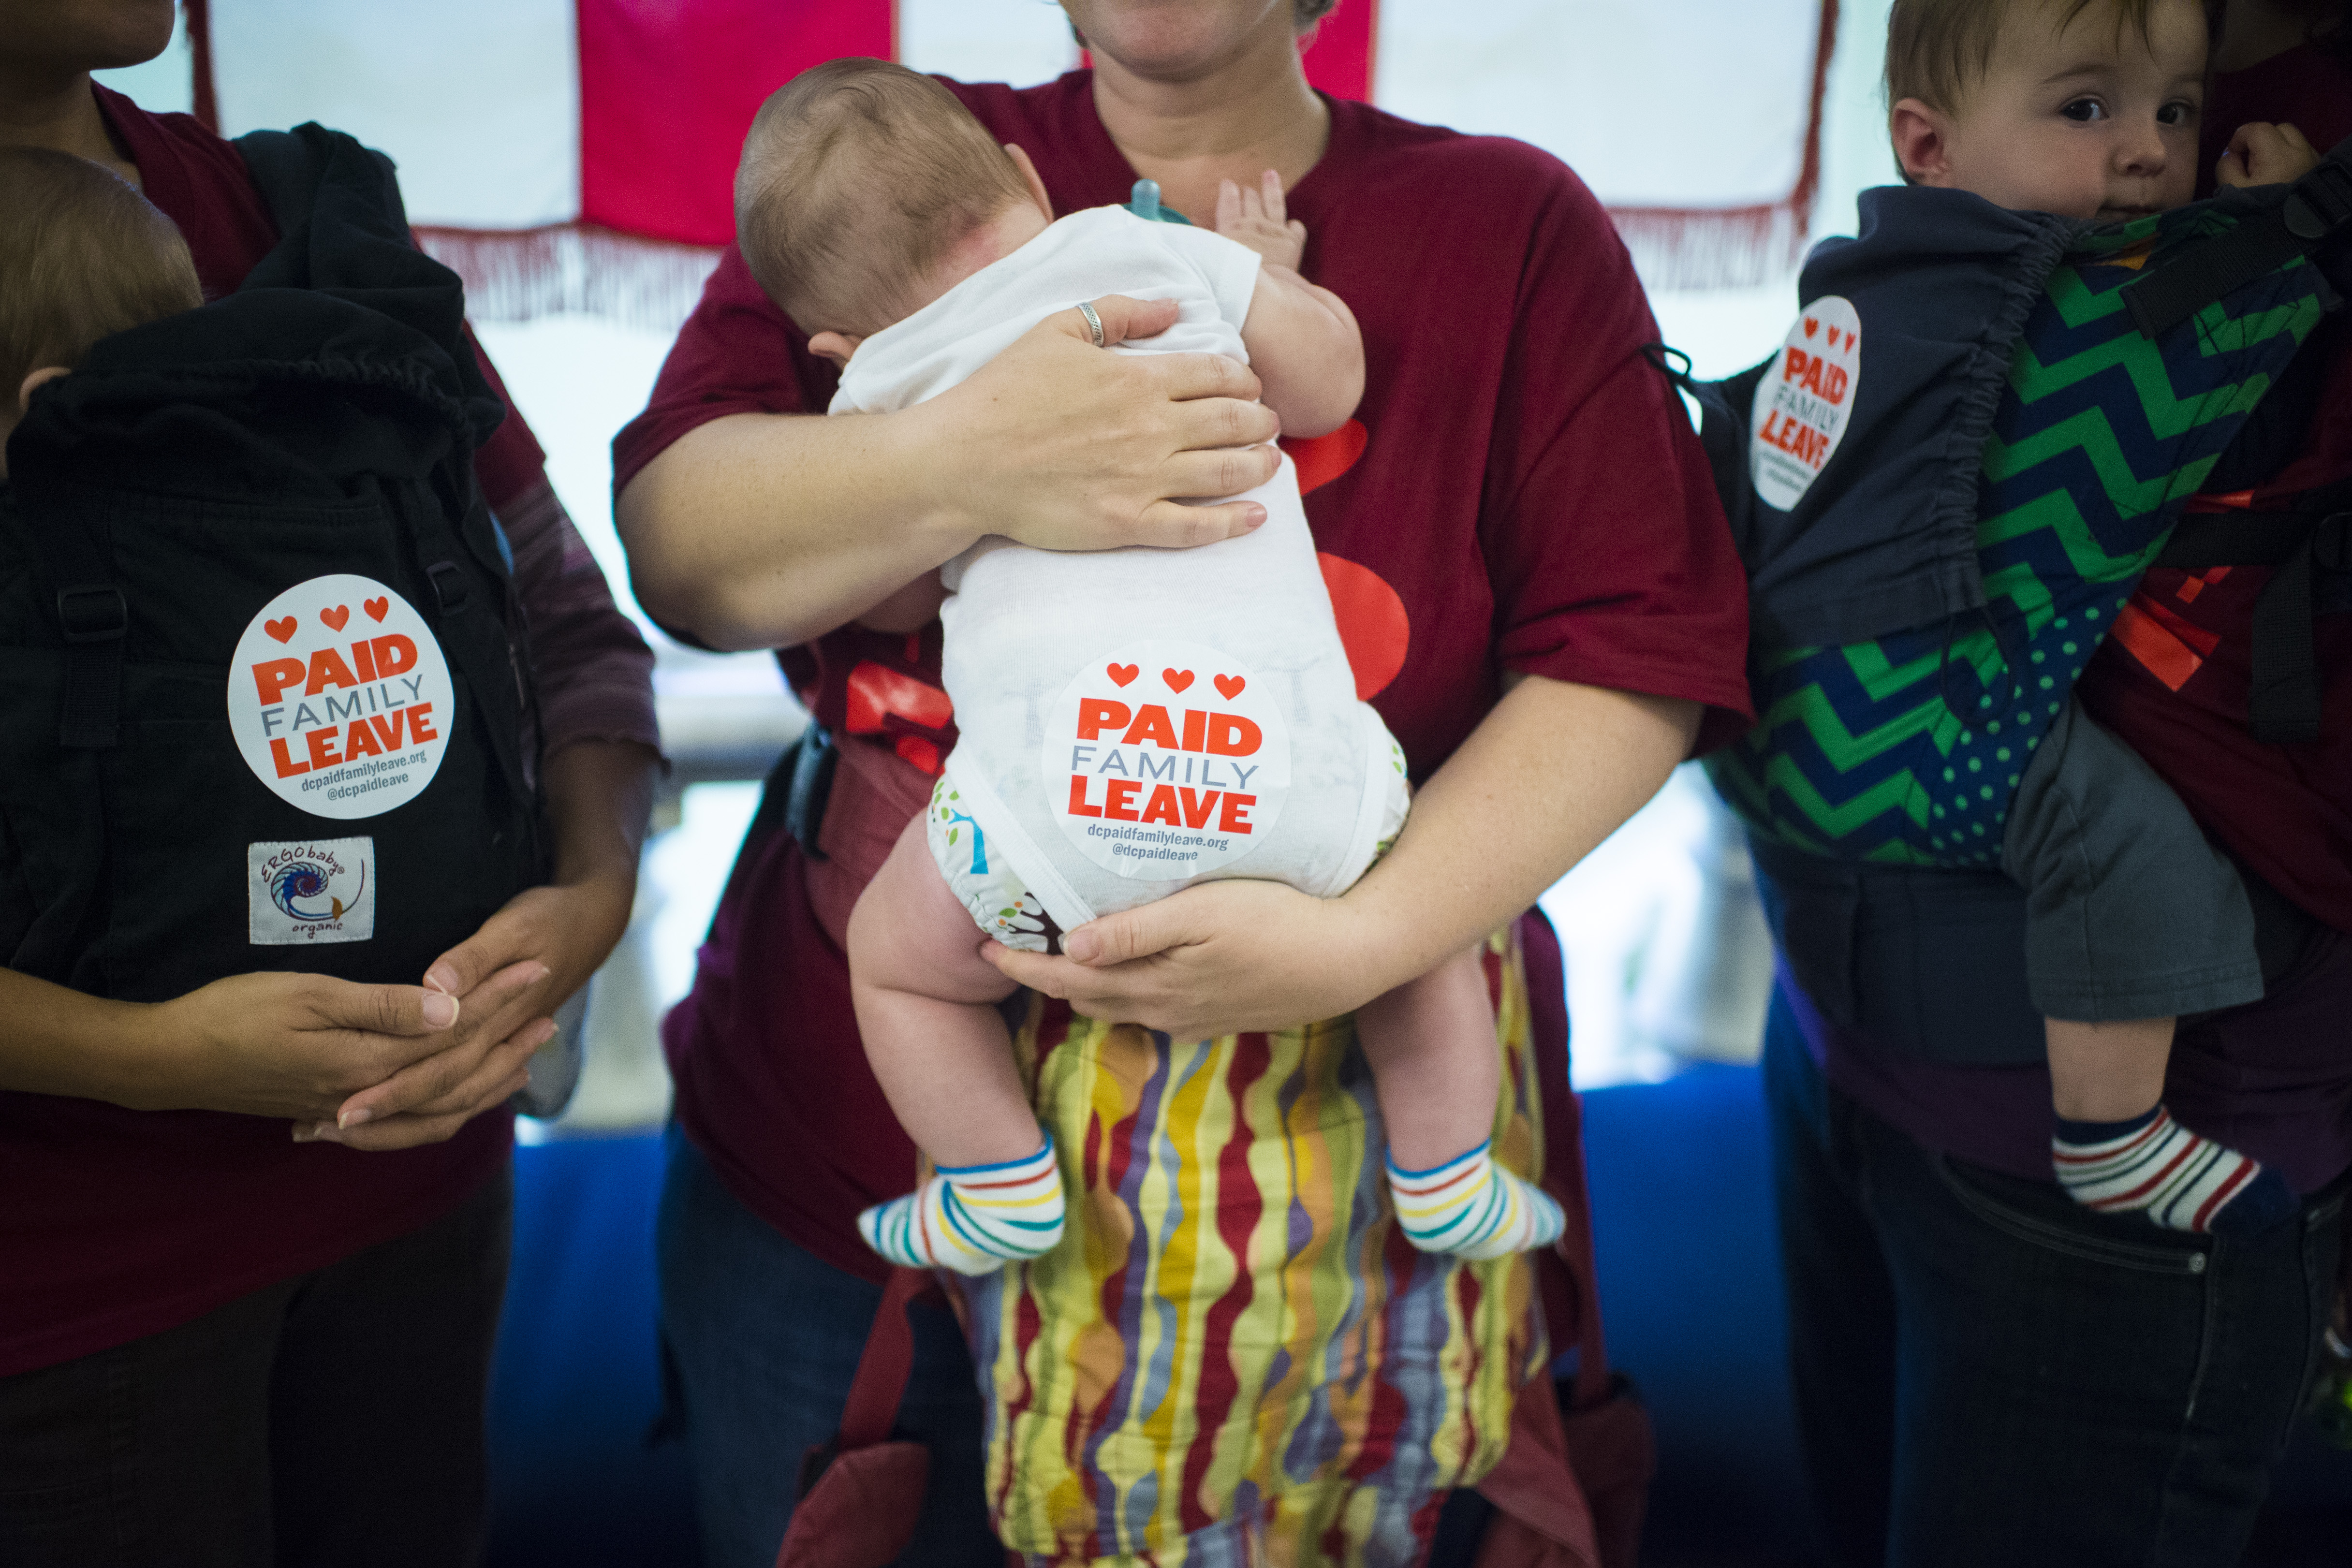 DC council members introduced a paid family leave bill that would create the most progressive system in the country and serve as a model for other cities that might be interested in paid leave.